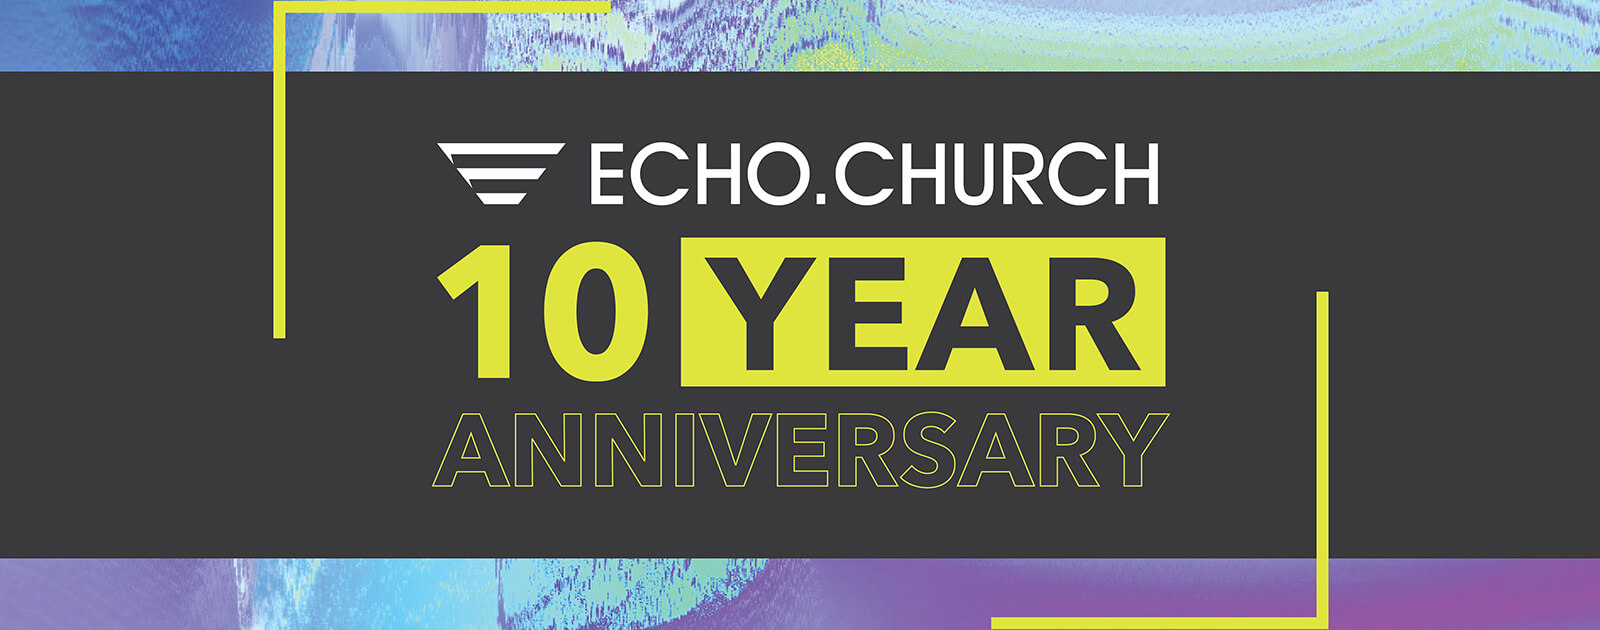 Echo.Church 10-Year Anniversary